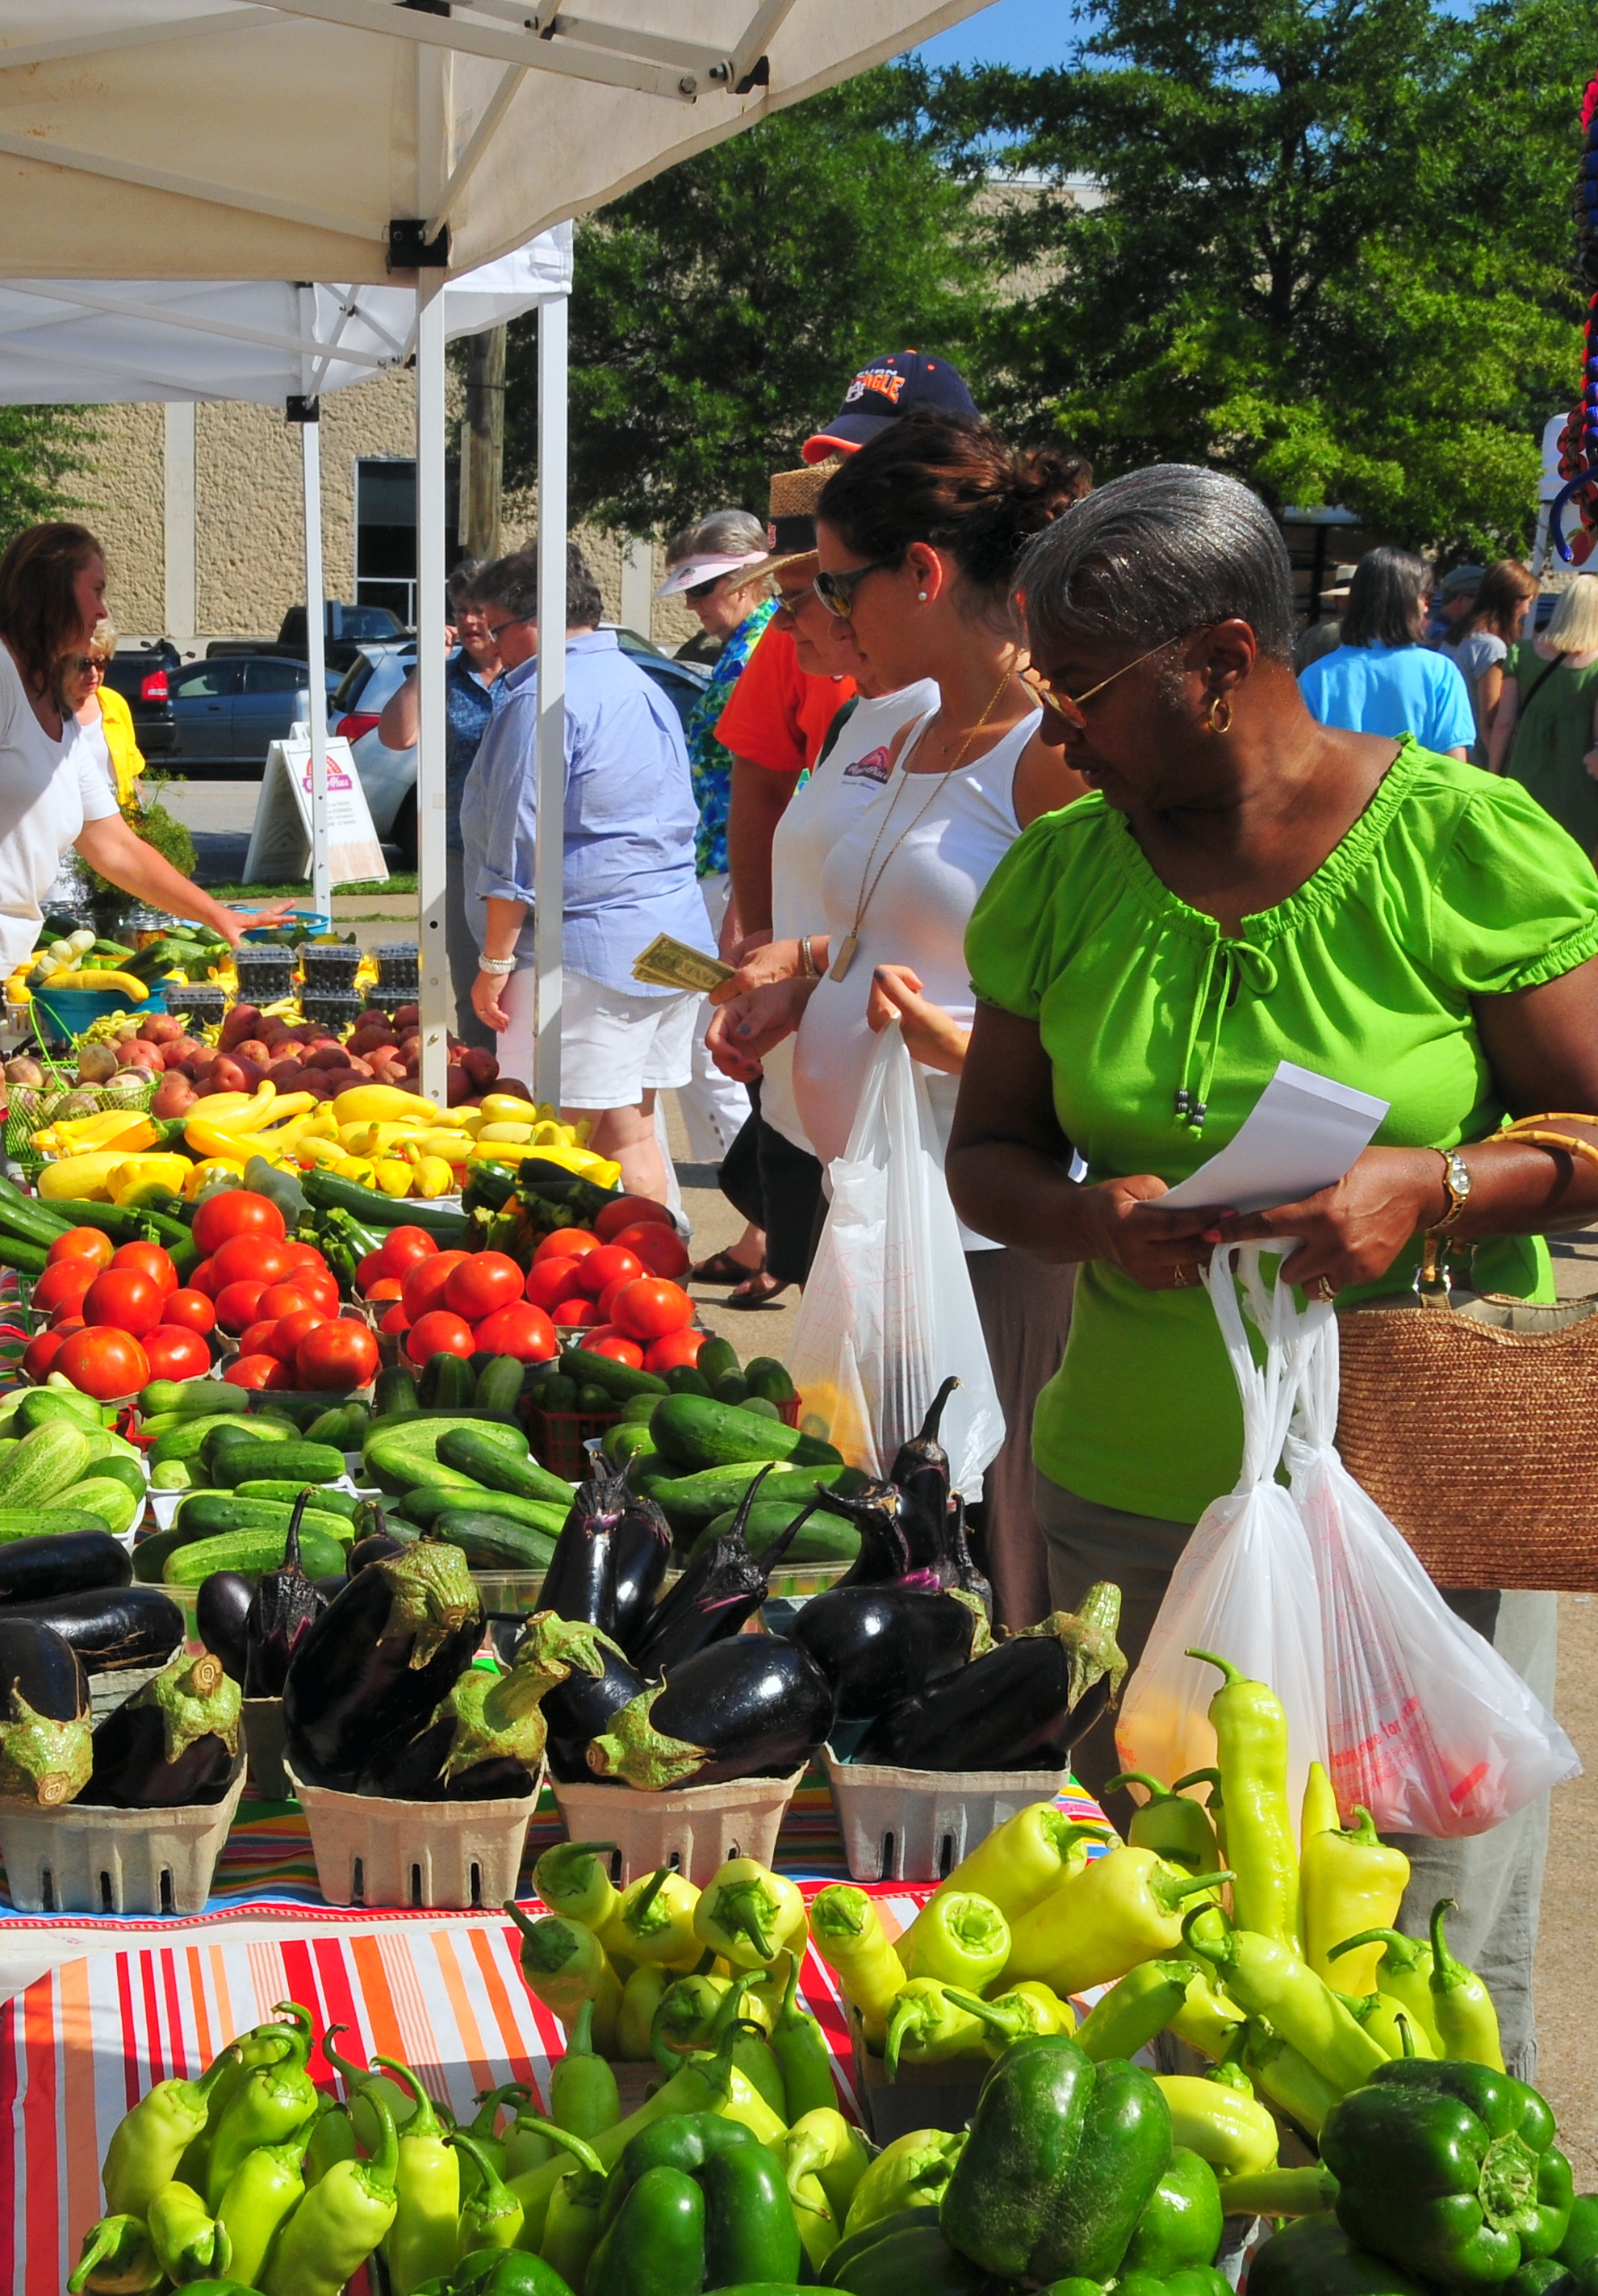 The Market at Pepper Place, 2829 2nd Avenue South in Birmingham